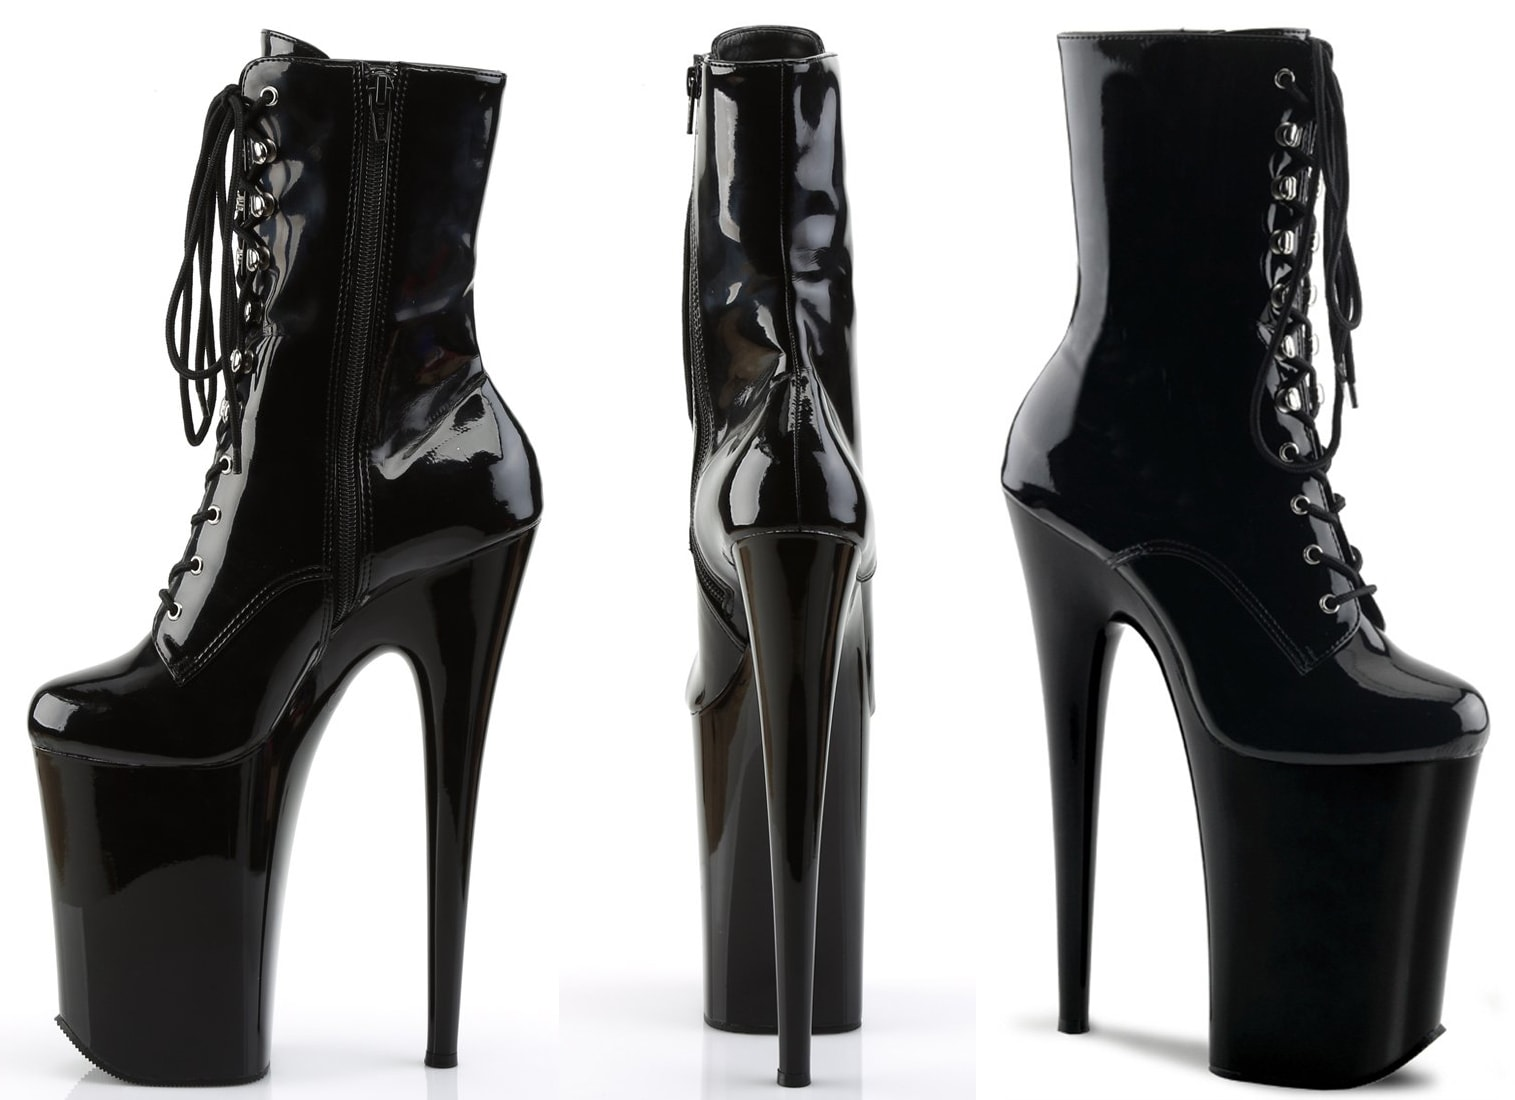 The Infinity boots by Pleaser boast 9-inch towering heels and 5.25-inch platforms